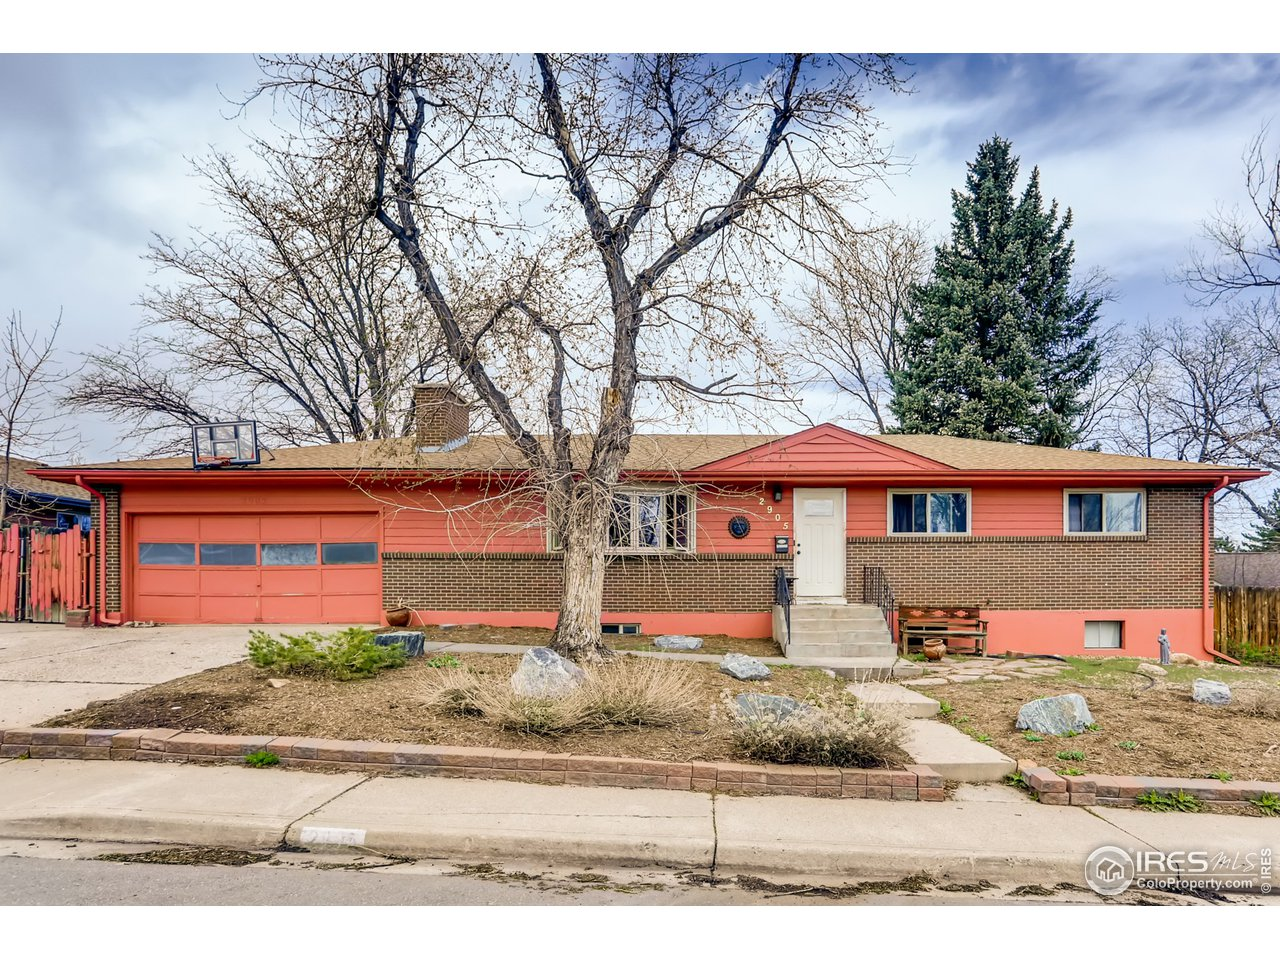 This home is in need of a complete & total remodel.